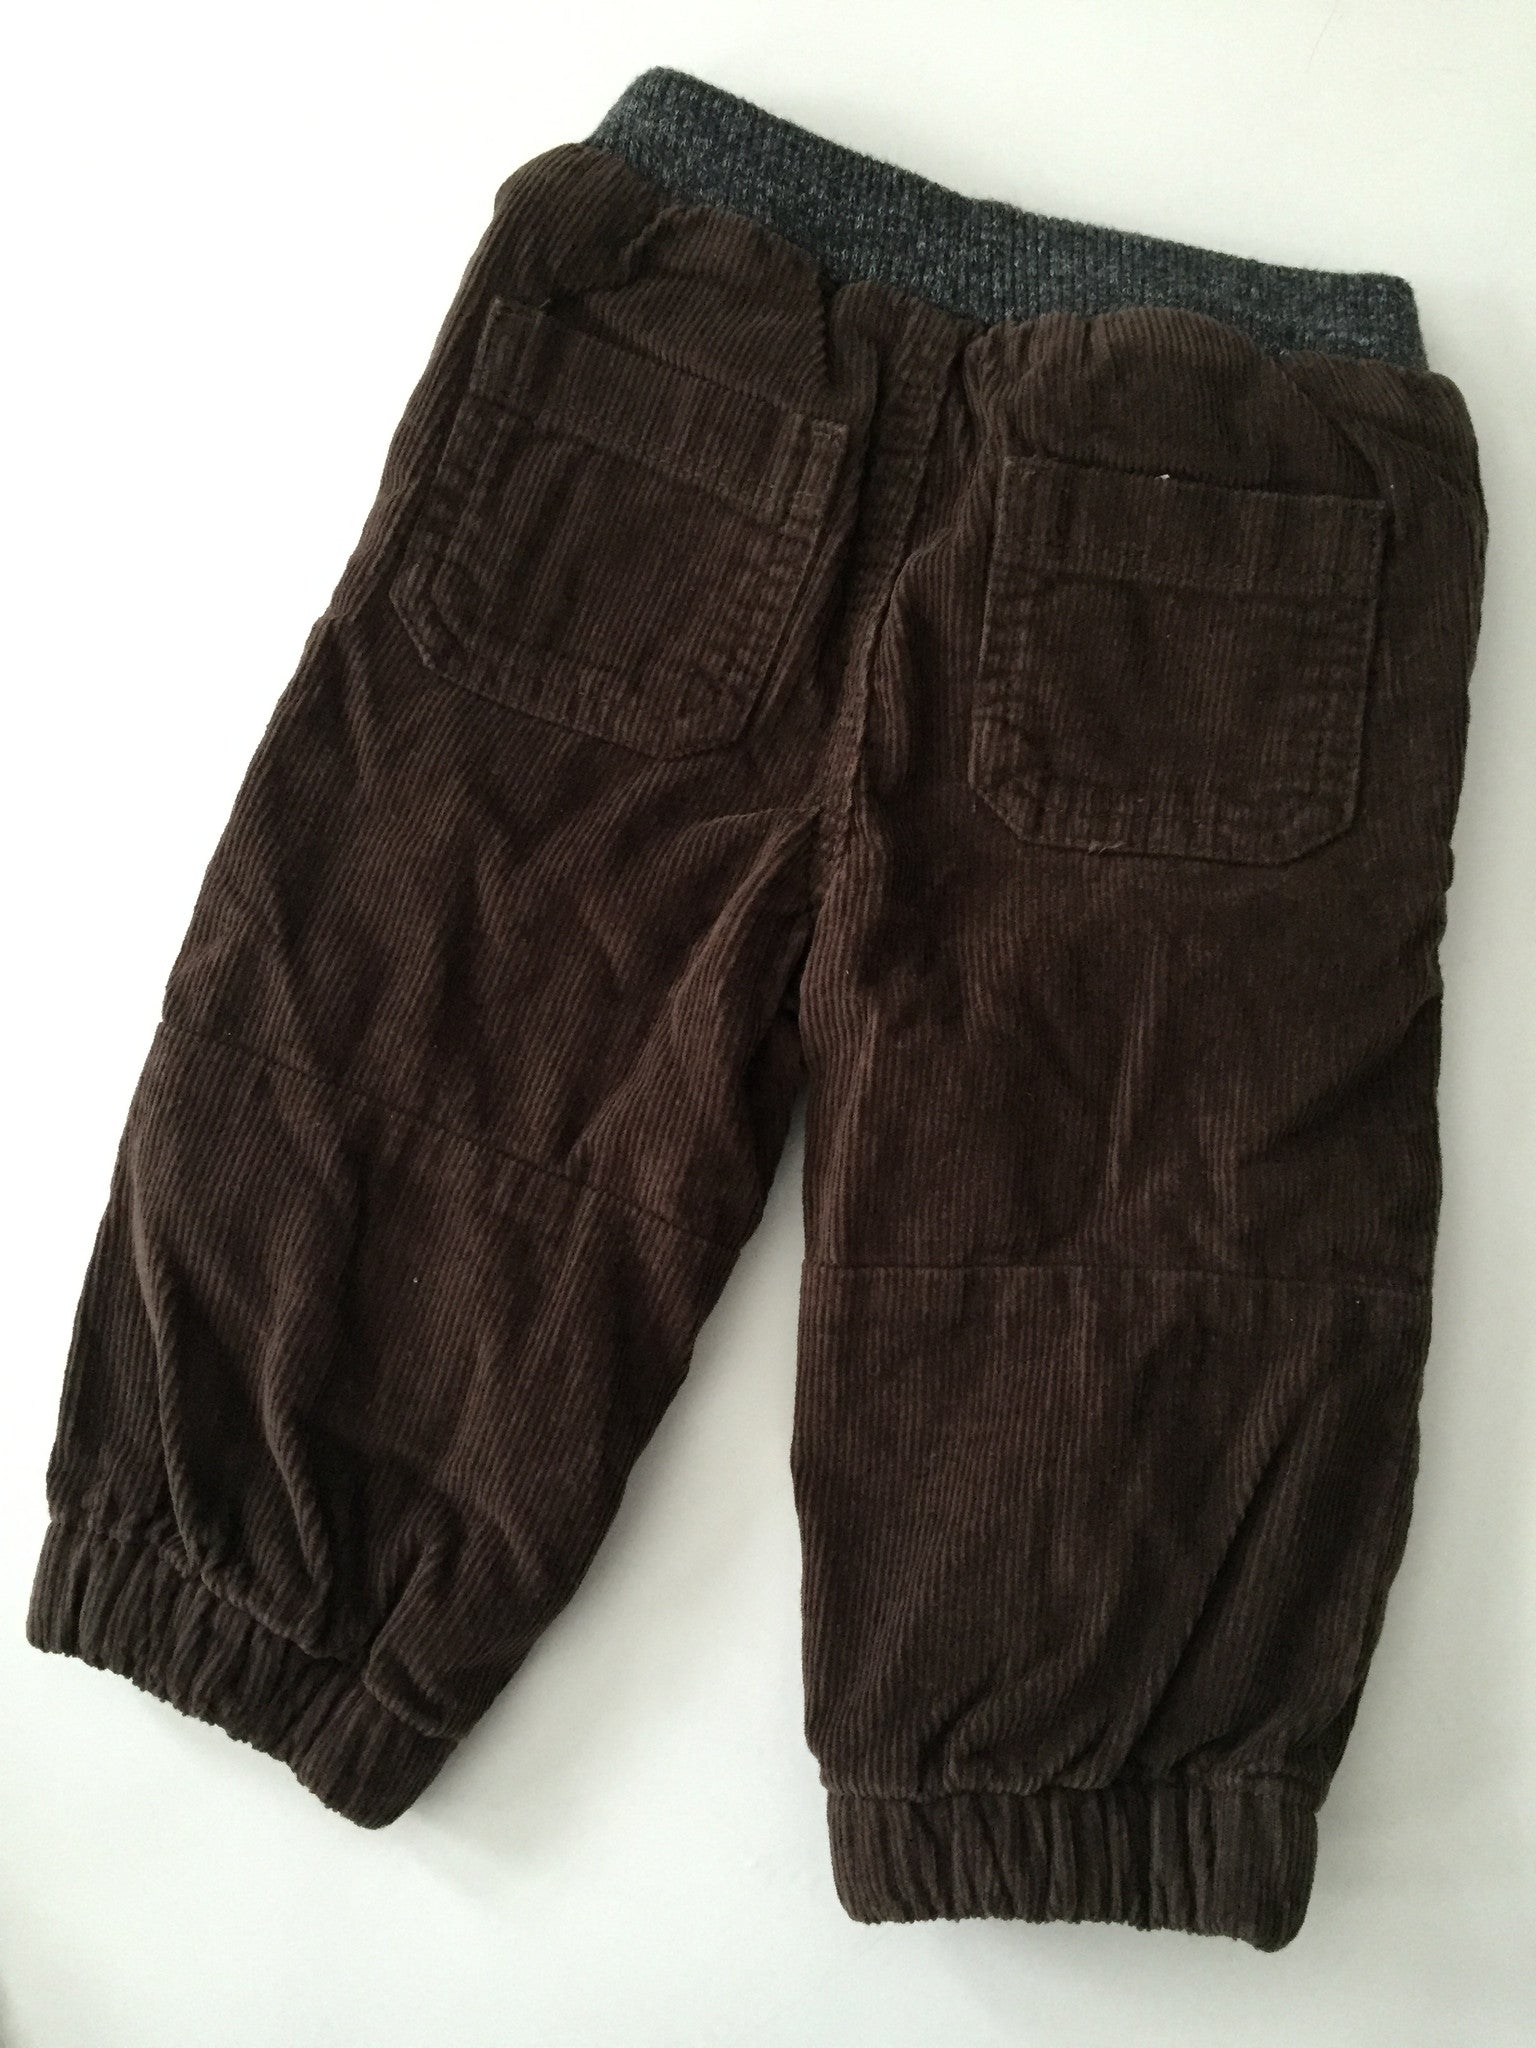 Joe Fresh Lined Corduroy Pants | 6-12M